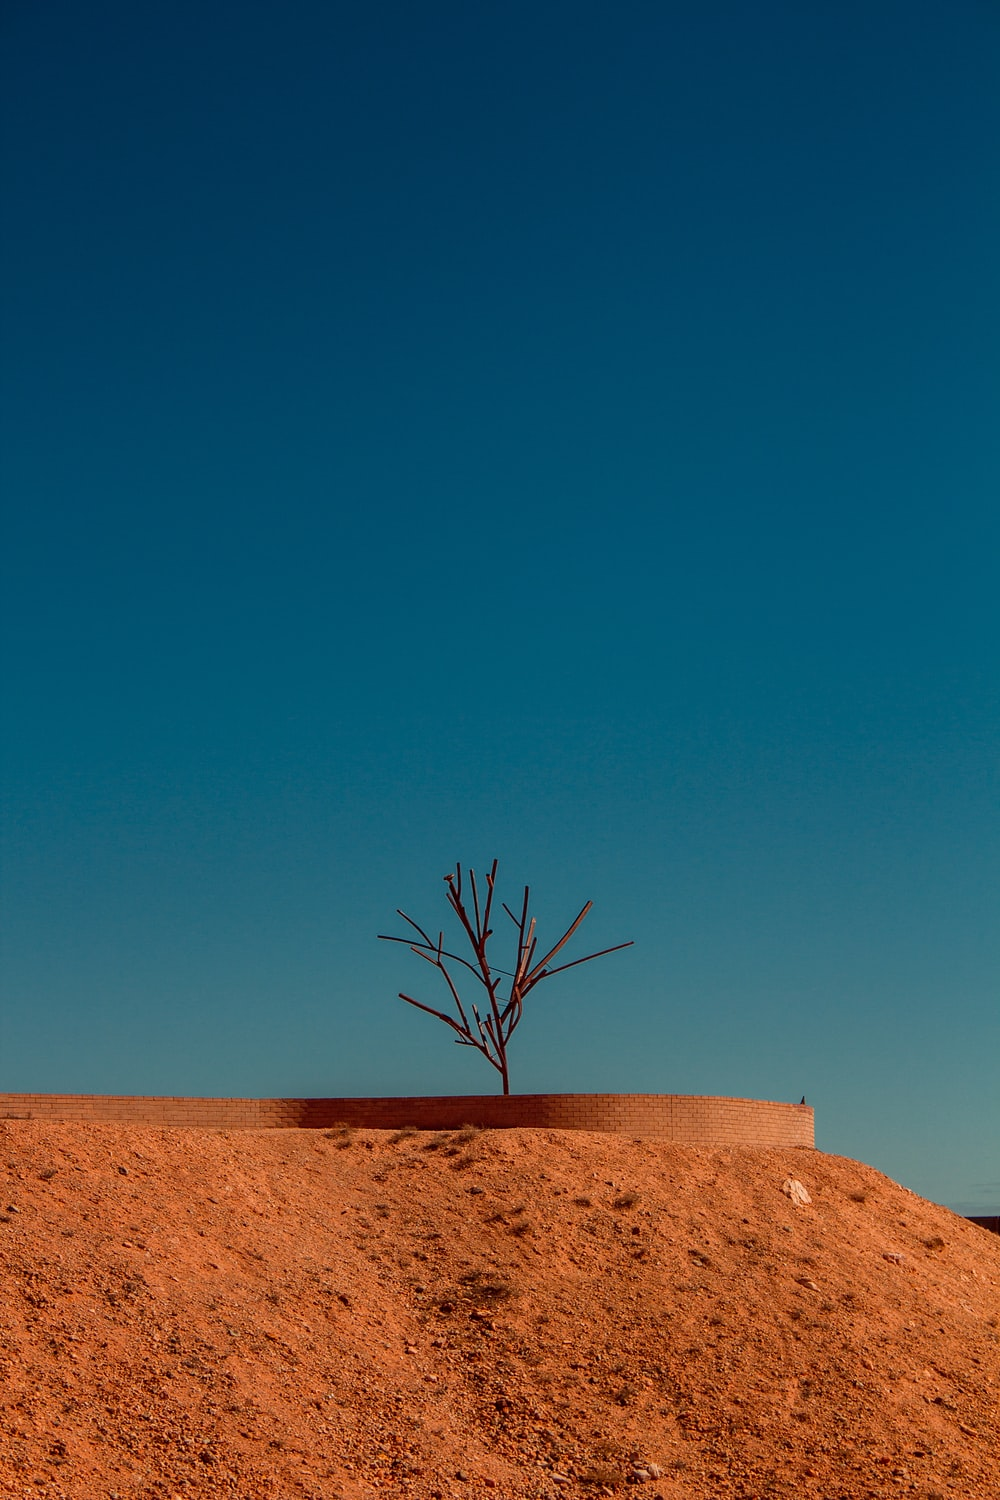 bare tree on brown sand under blue sky during daytime